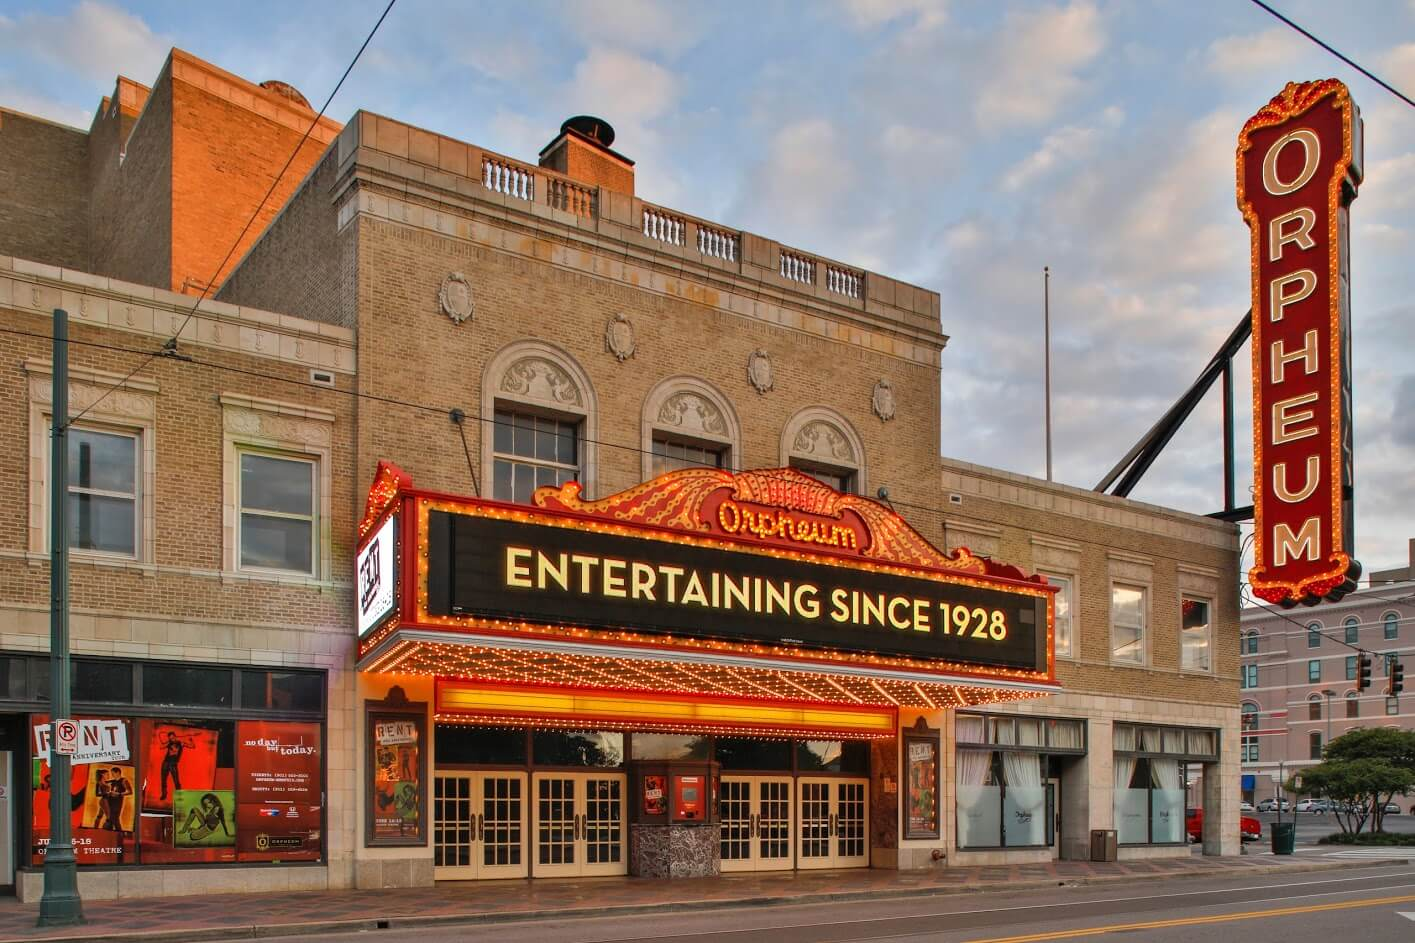 The Orpheum Theatre: The History Behind This Memphis Landmark